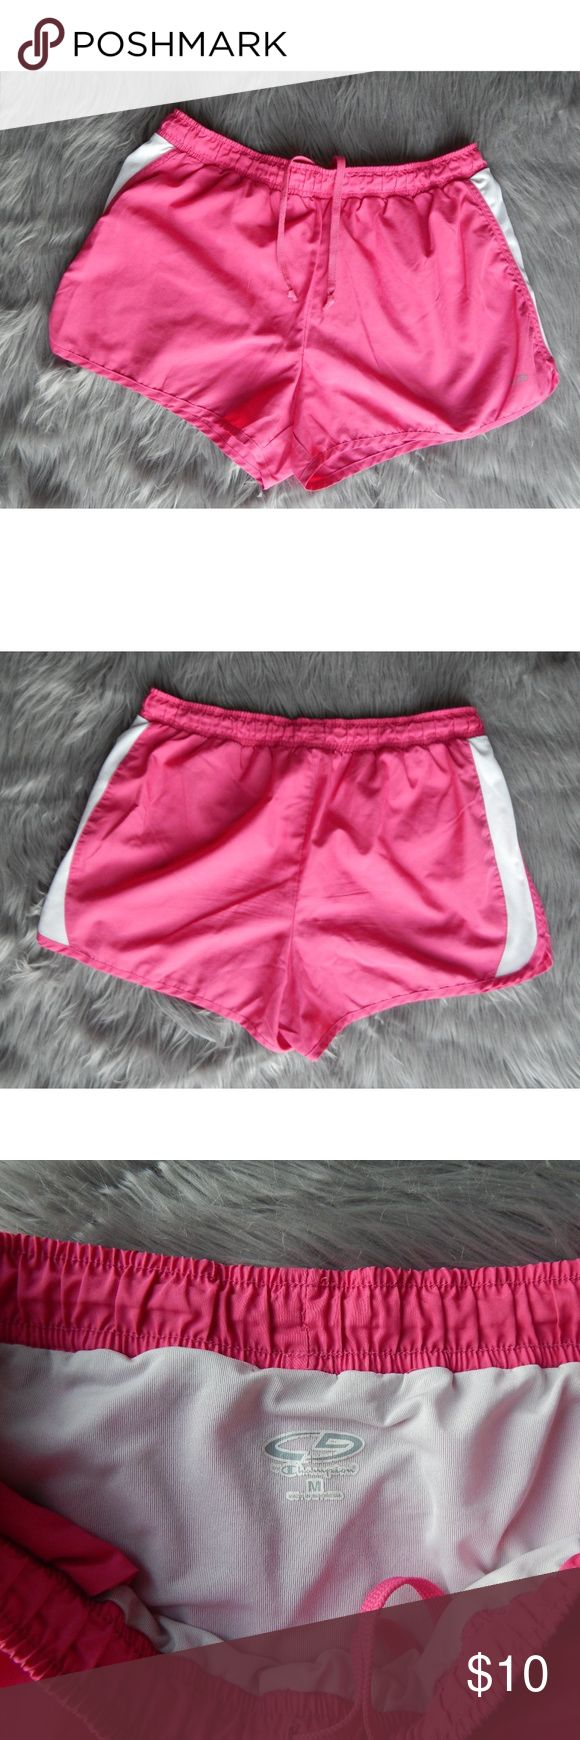 Champion Workout Shorts Shorts are in great condition: no rips, tears or holes, no stains Hot pink shorts with white stripe down each side Draw string waistband Original lining still in shorts Champion Shorts